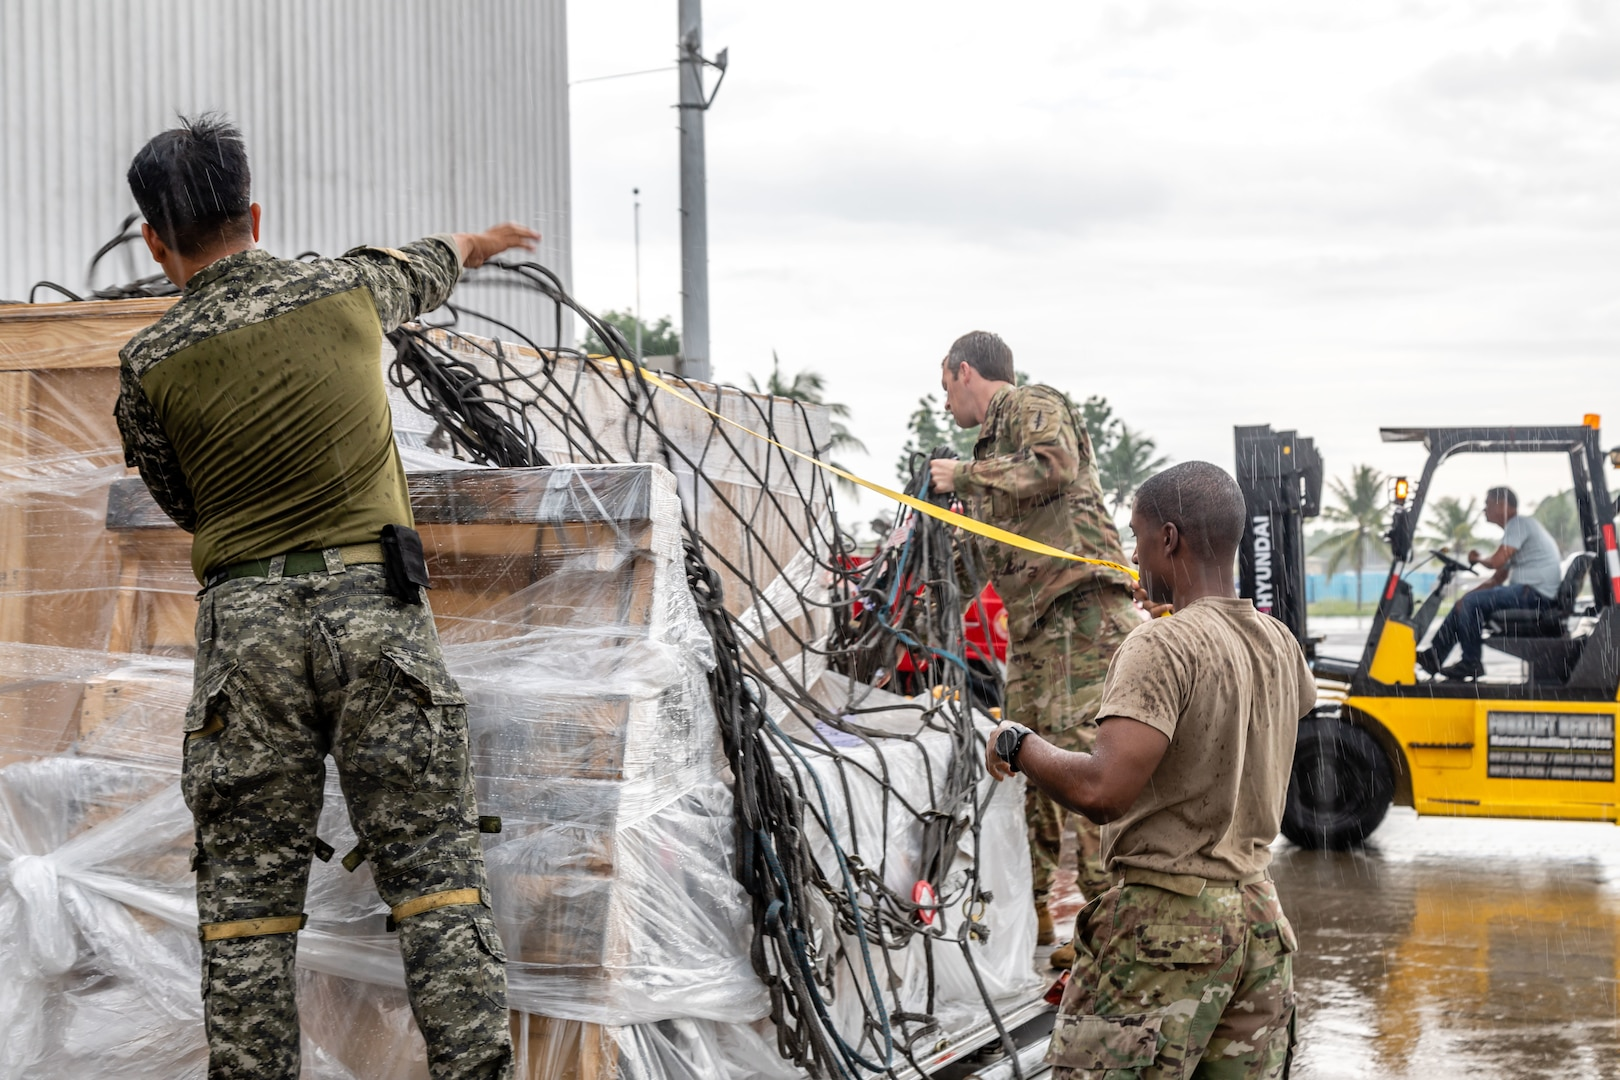 U.S. Delivers Military Equipment to the Armed Forces of the Philippines